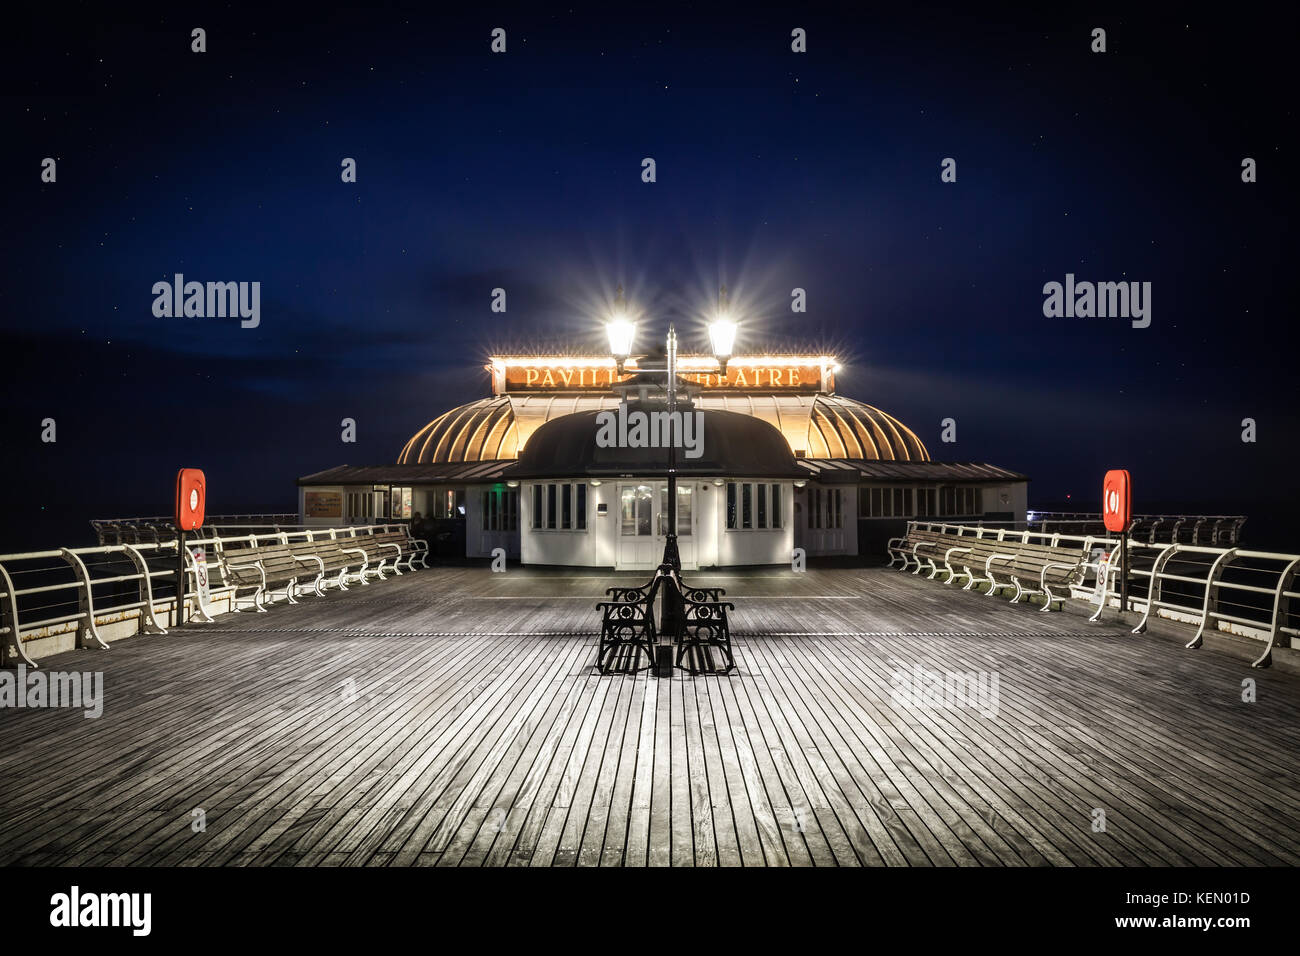 Cromer Pier Pavilion At Night - One of the greatest piers and pavilion theatre's in England jutting out from - Stock Image